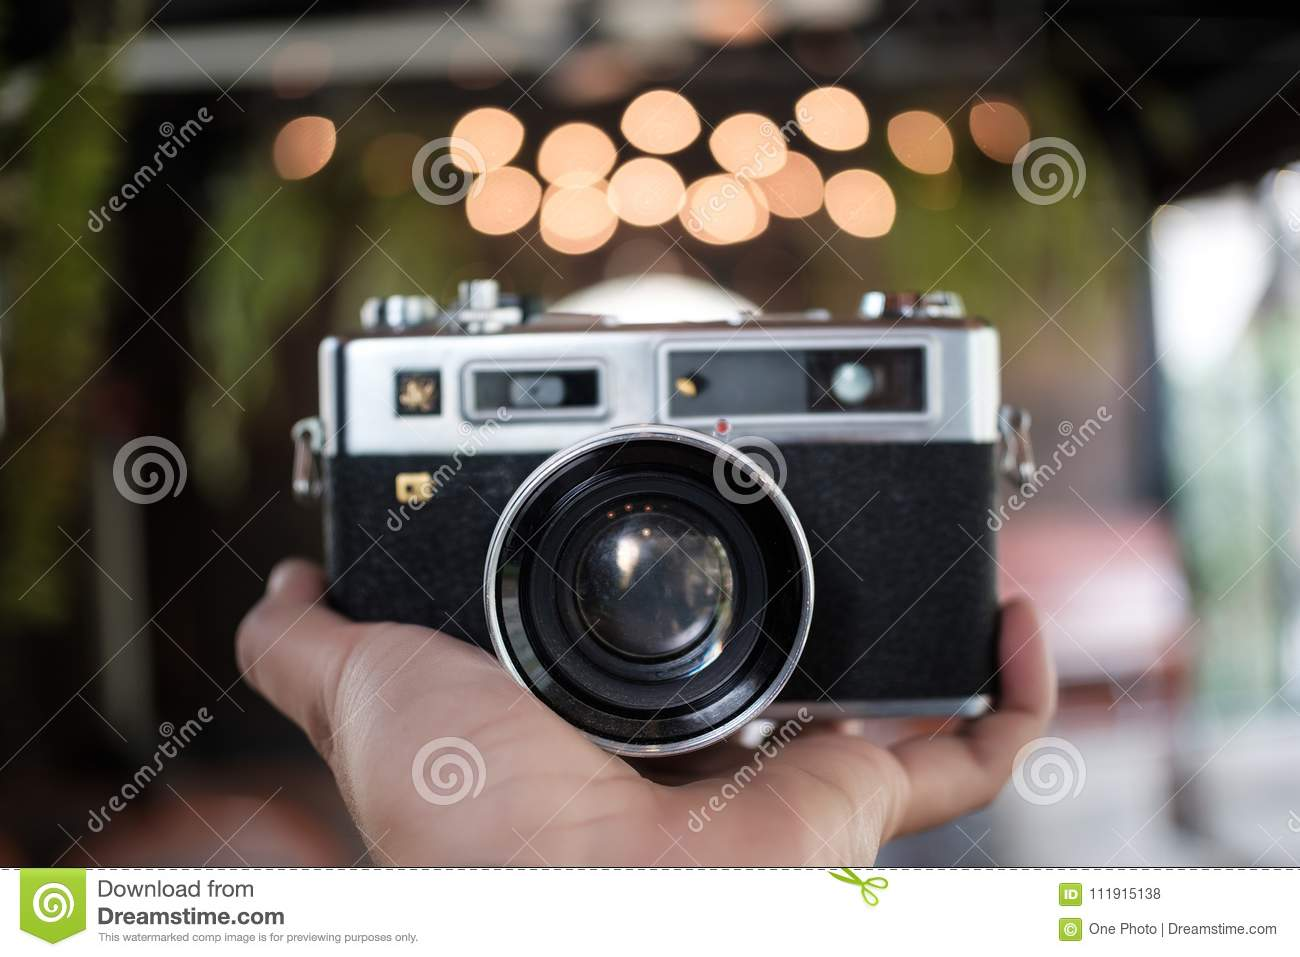 Classic old analog camera vintage color effect camera in hand